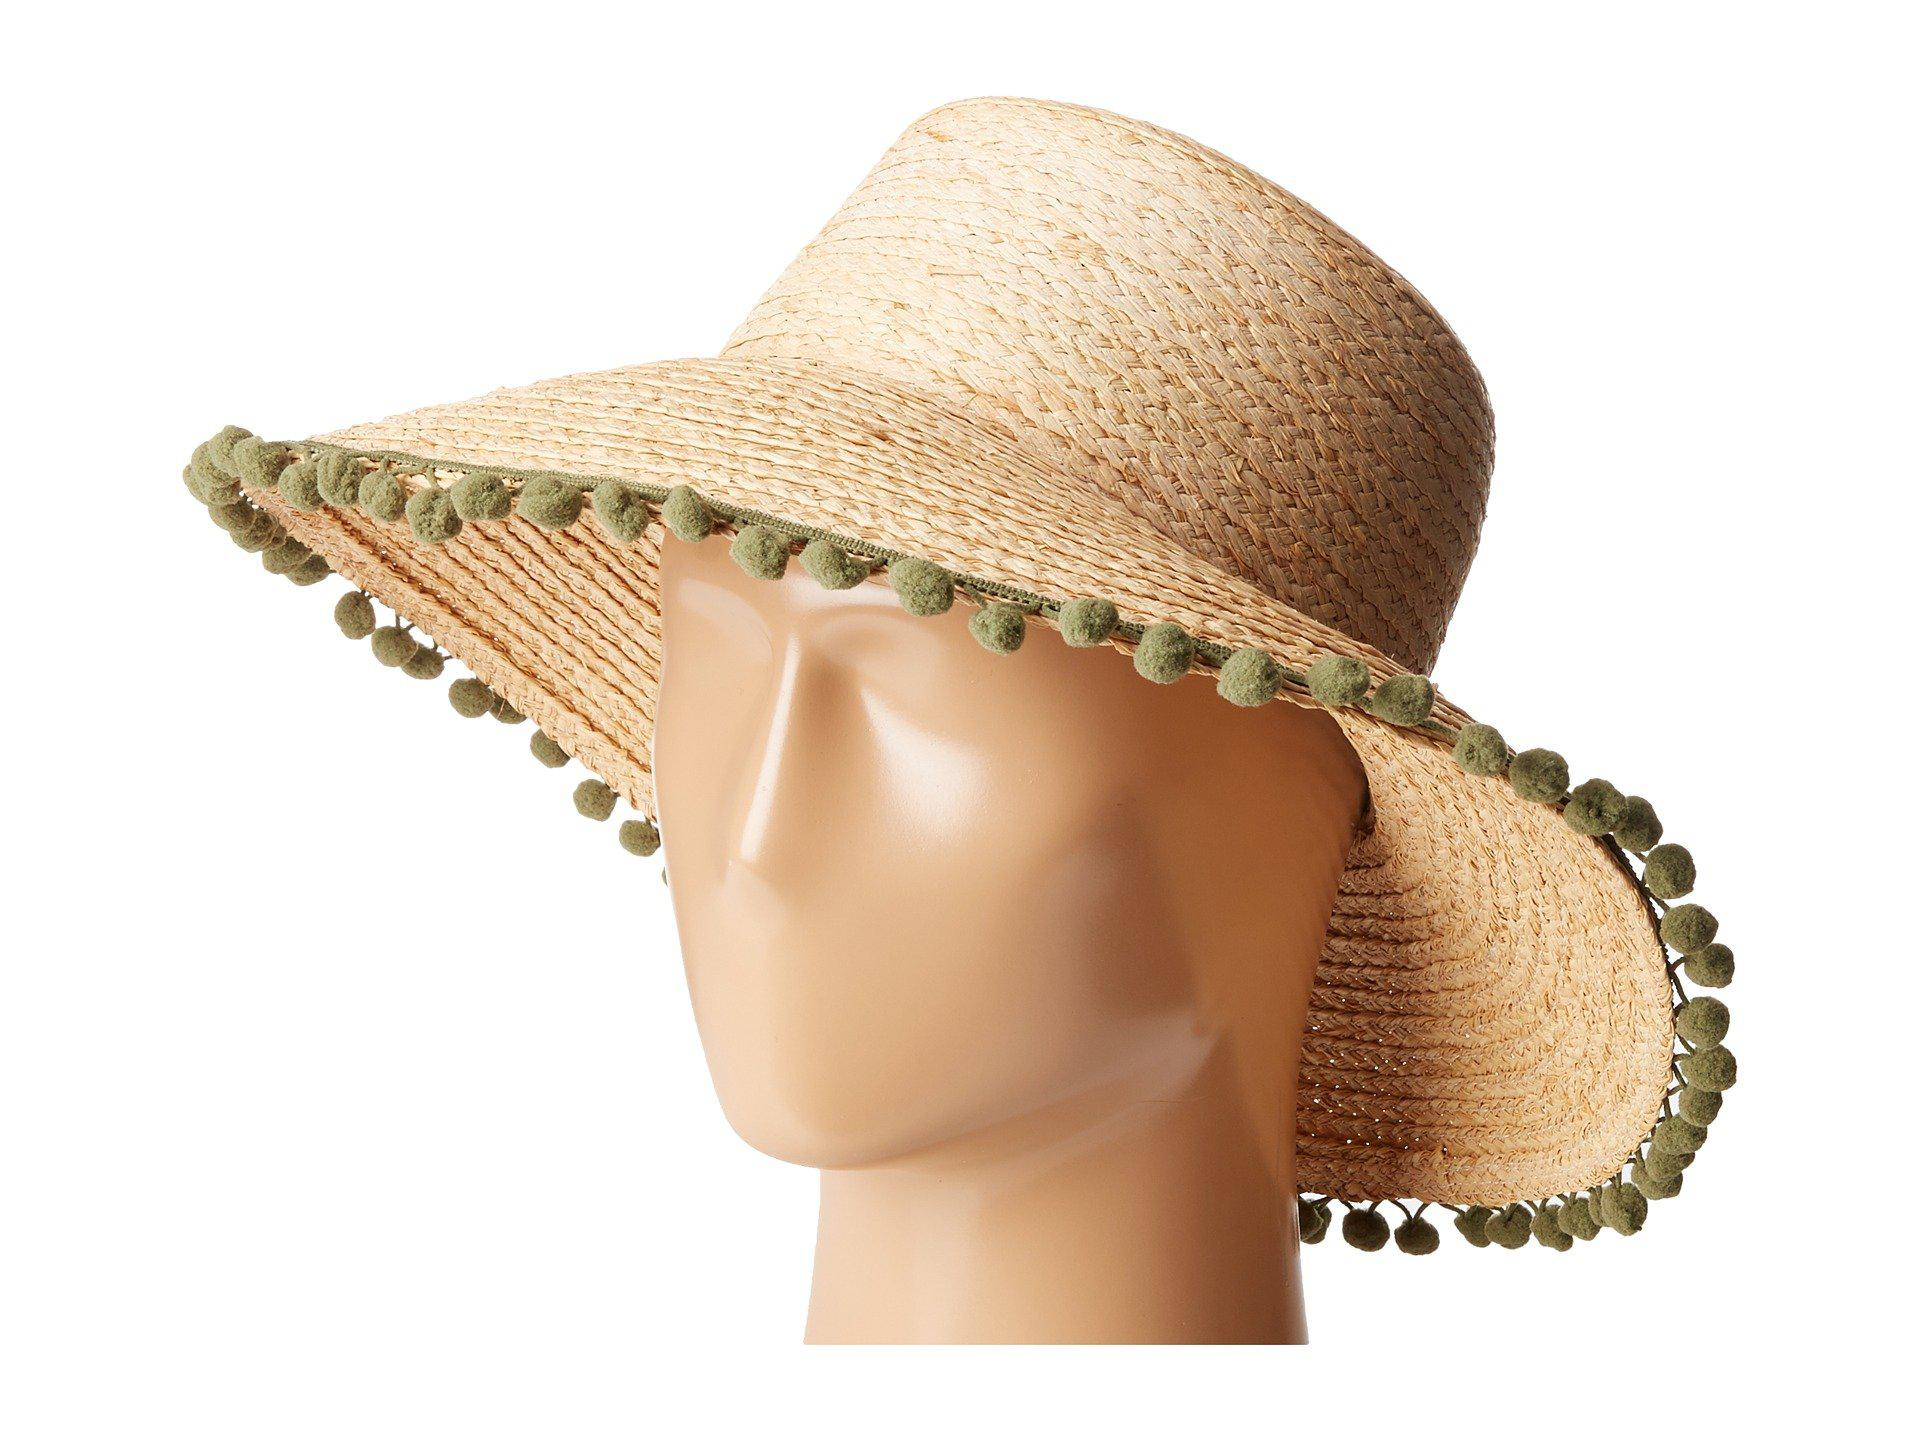 Lampshade Hat in Tan Hat Attack Fast Express Shop For Cheap Online sTIawQ97dd